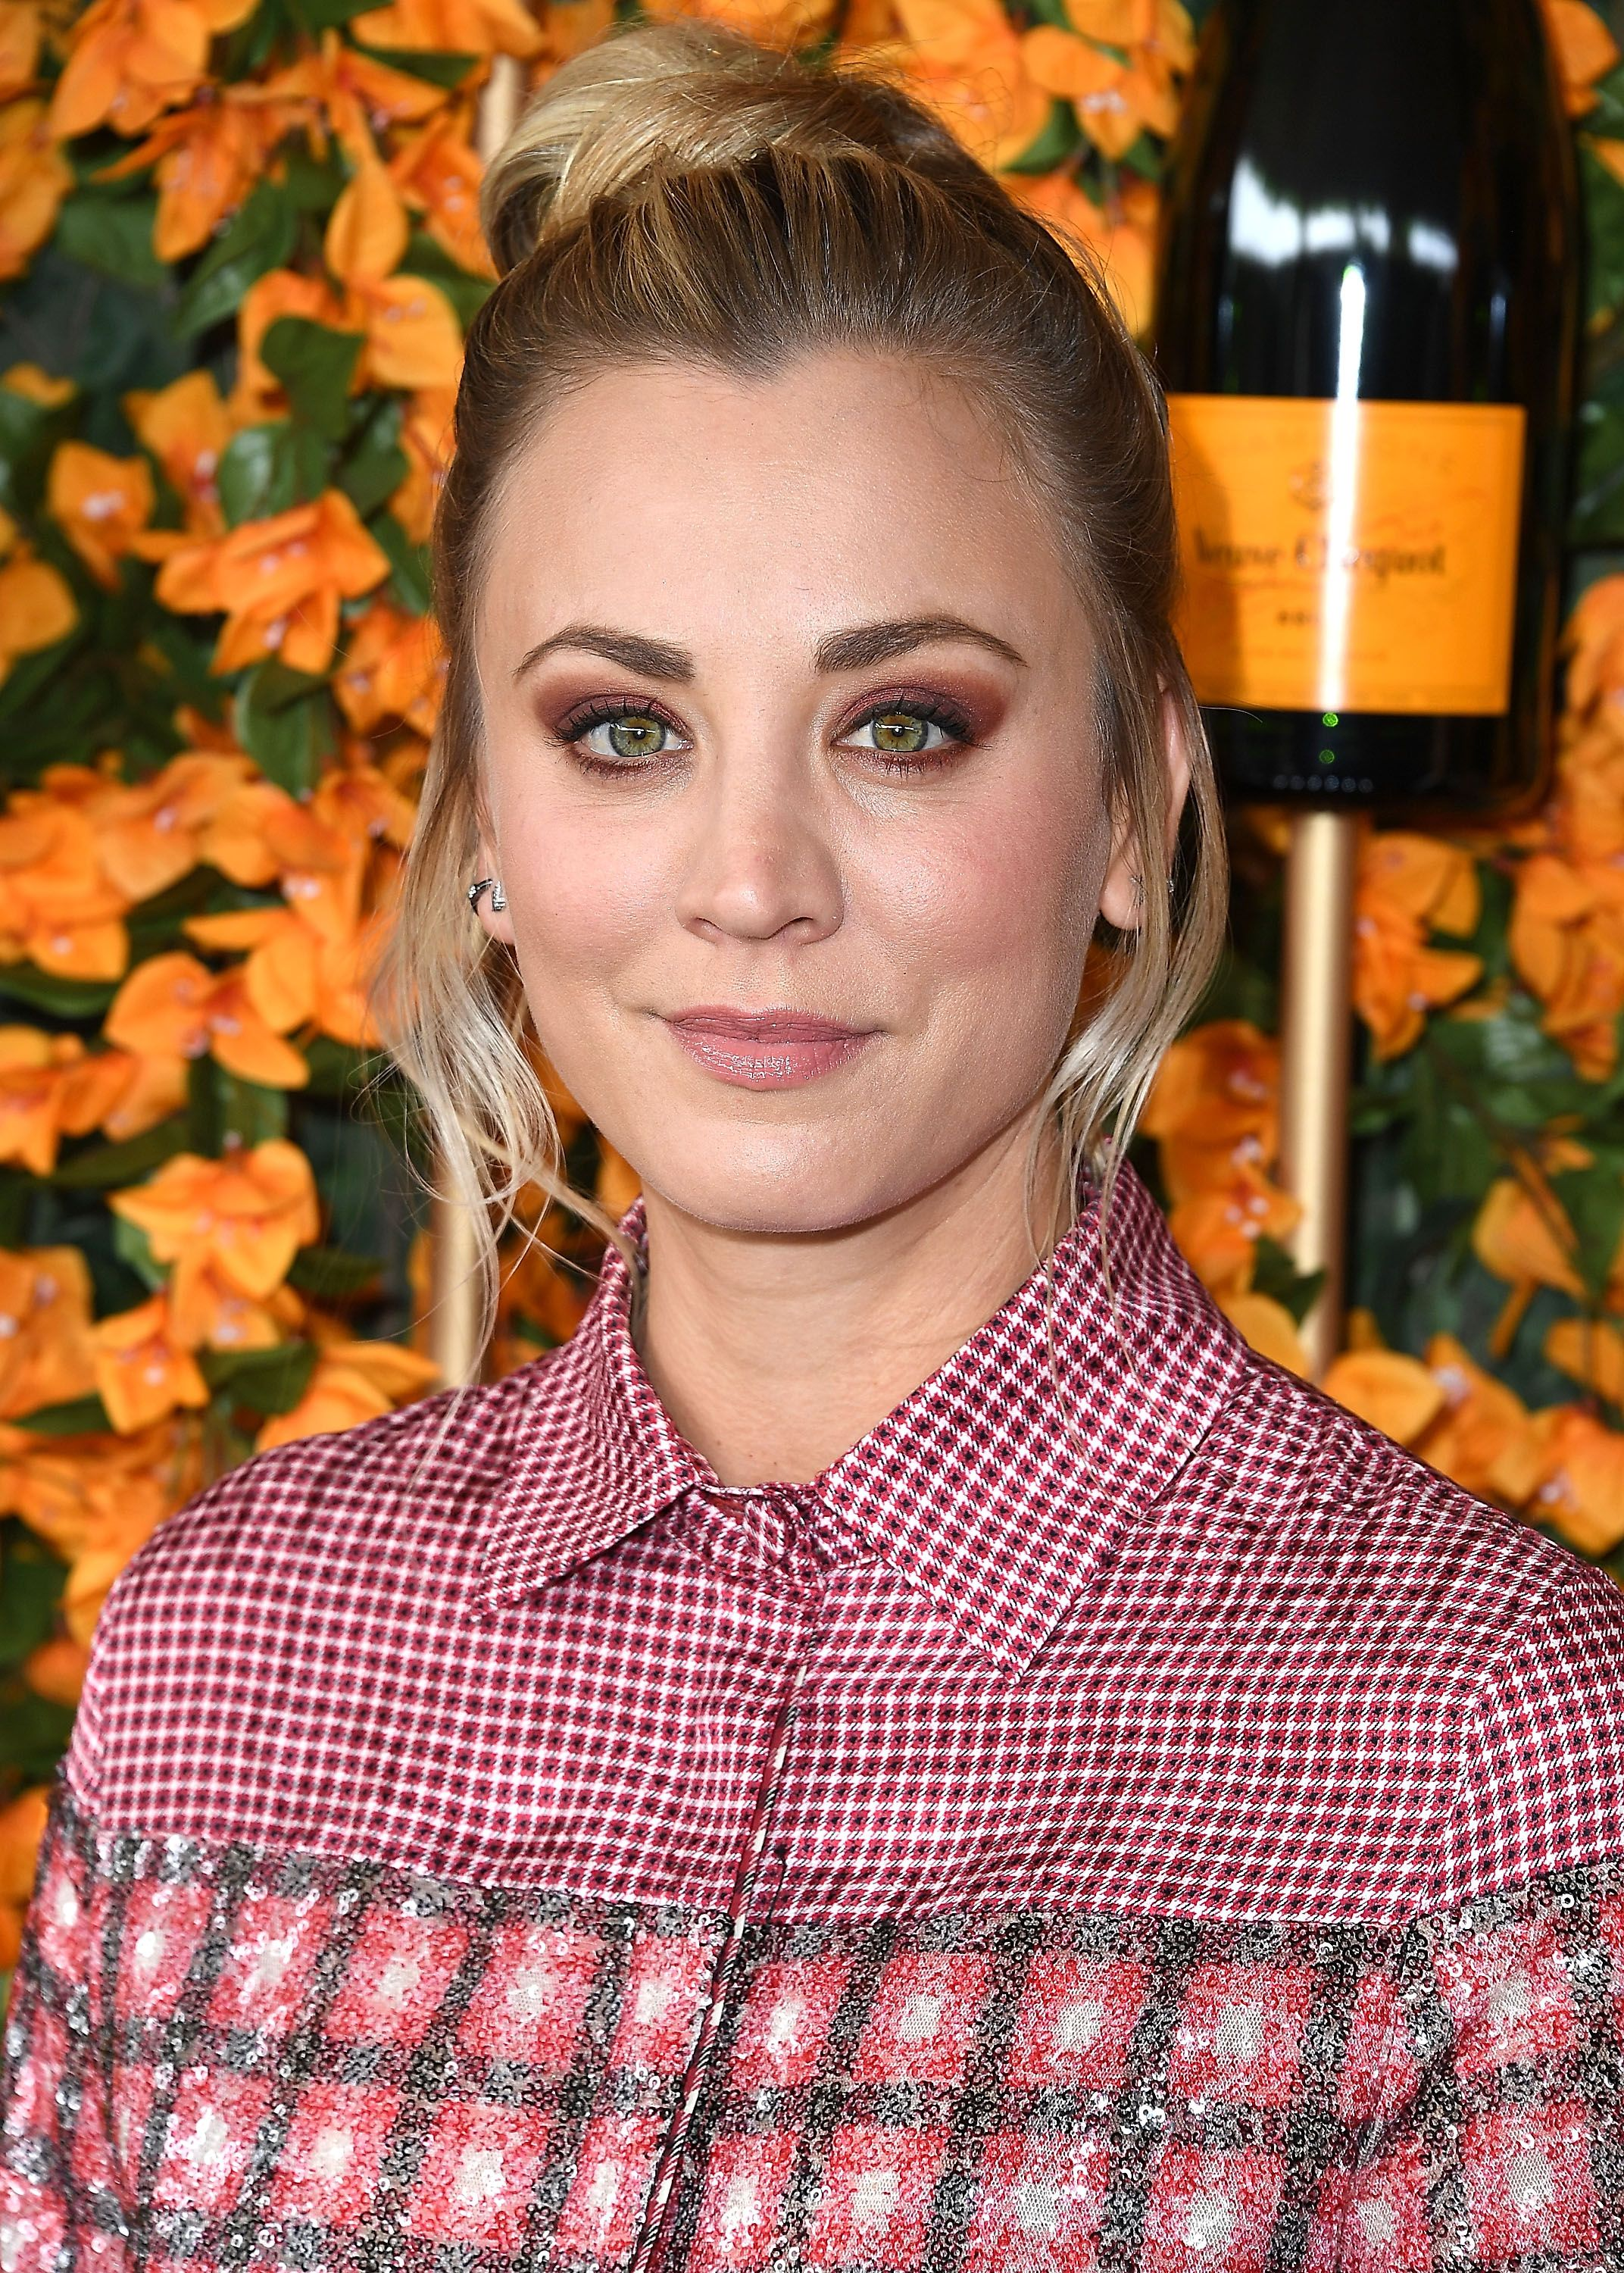 Kaley Cuoco Just Shared Her New Workout Routine And Damn No Wonder She Looks So Good